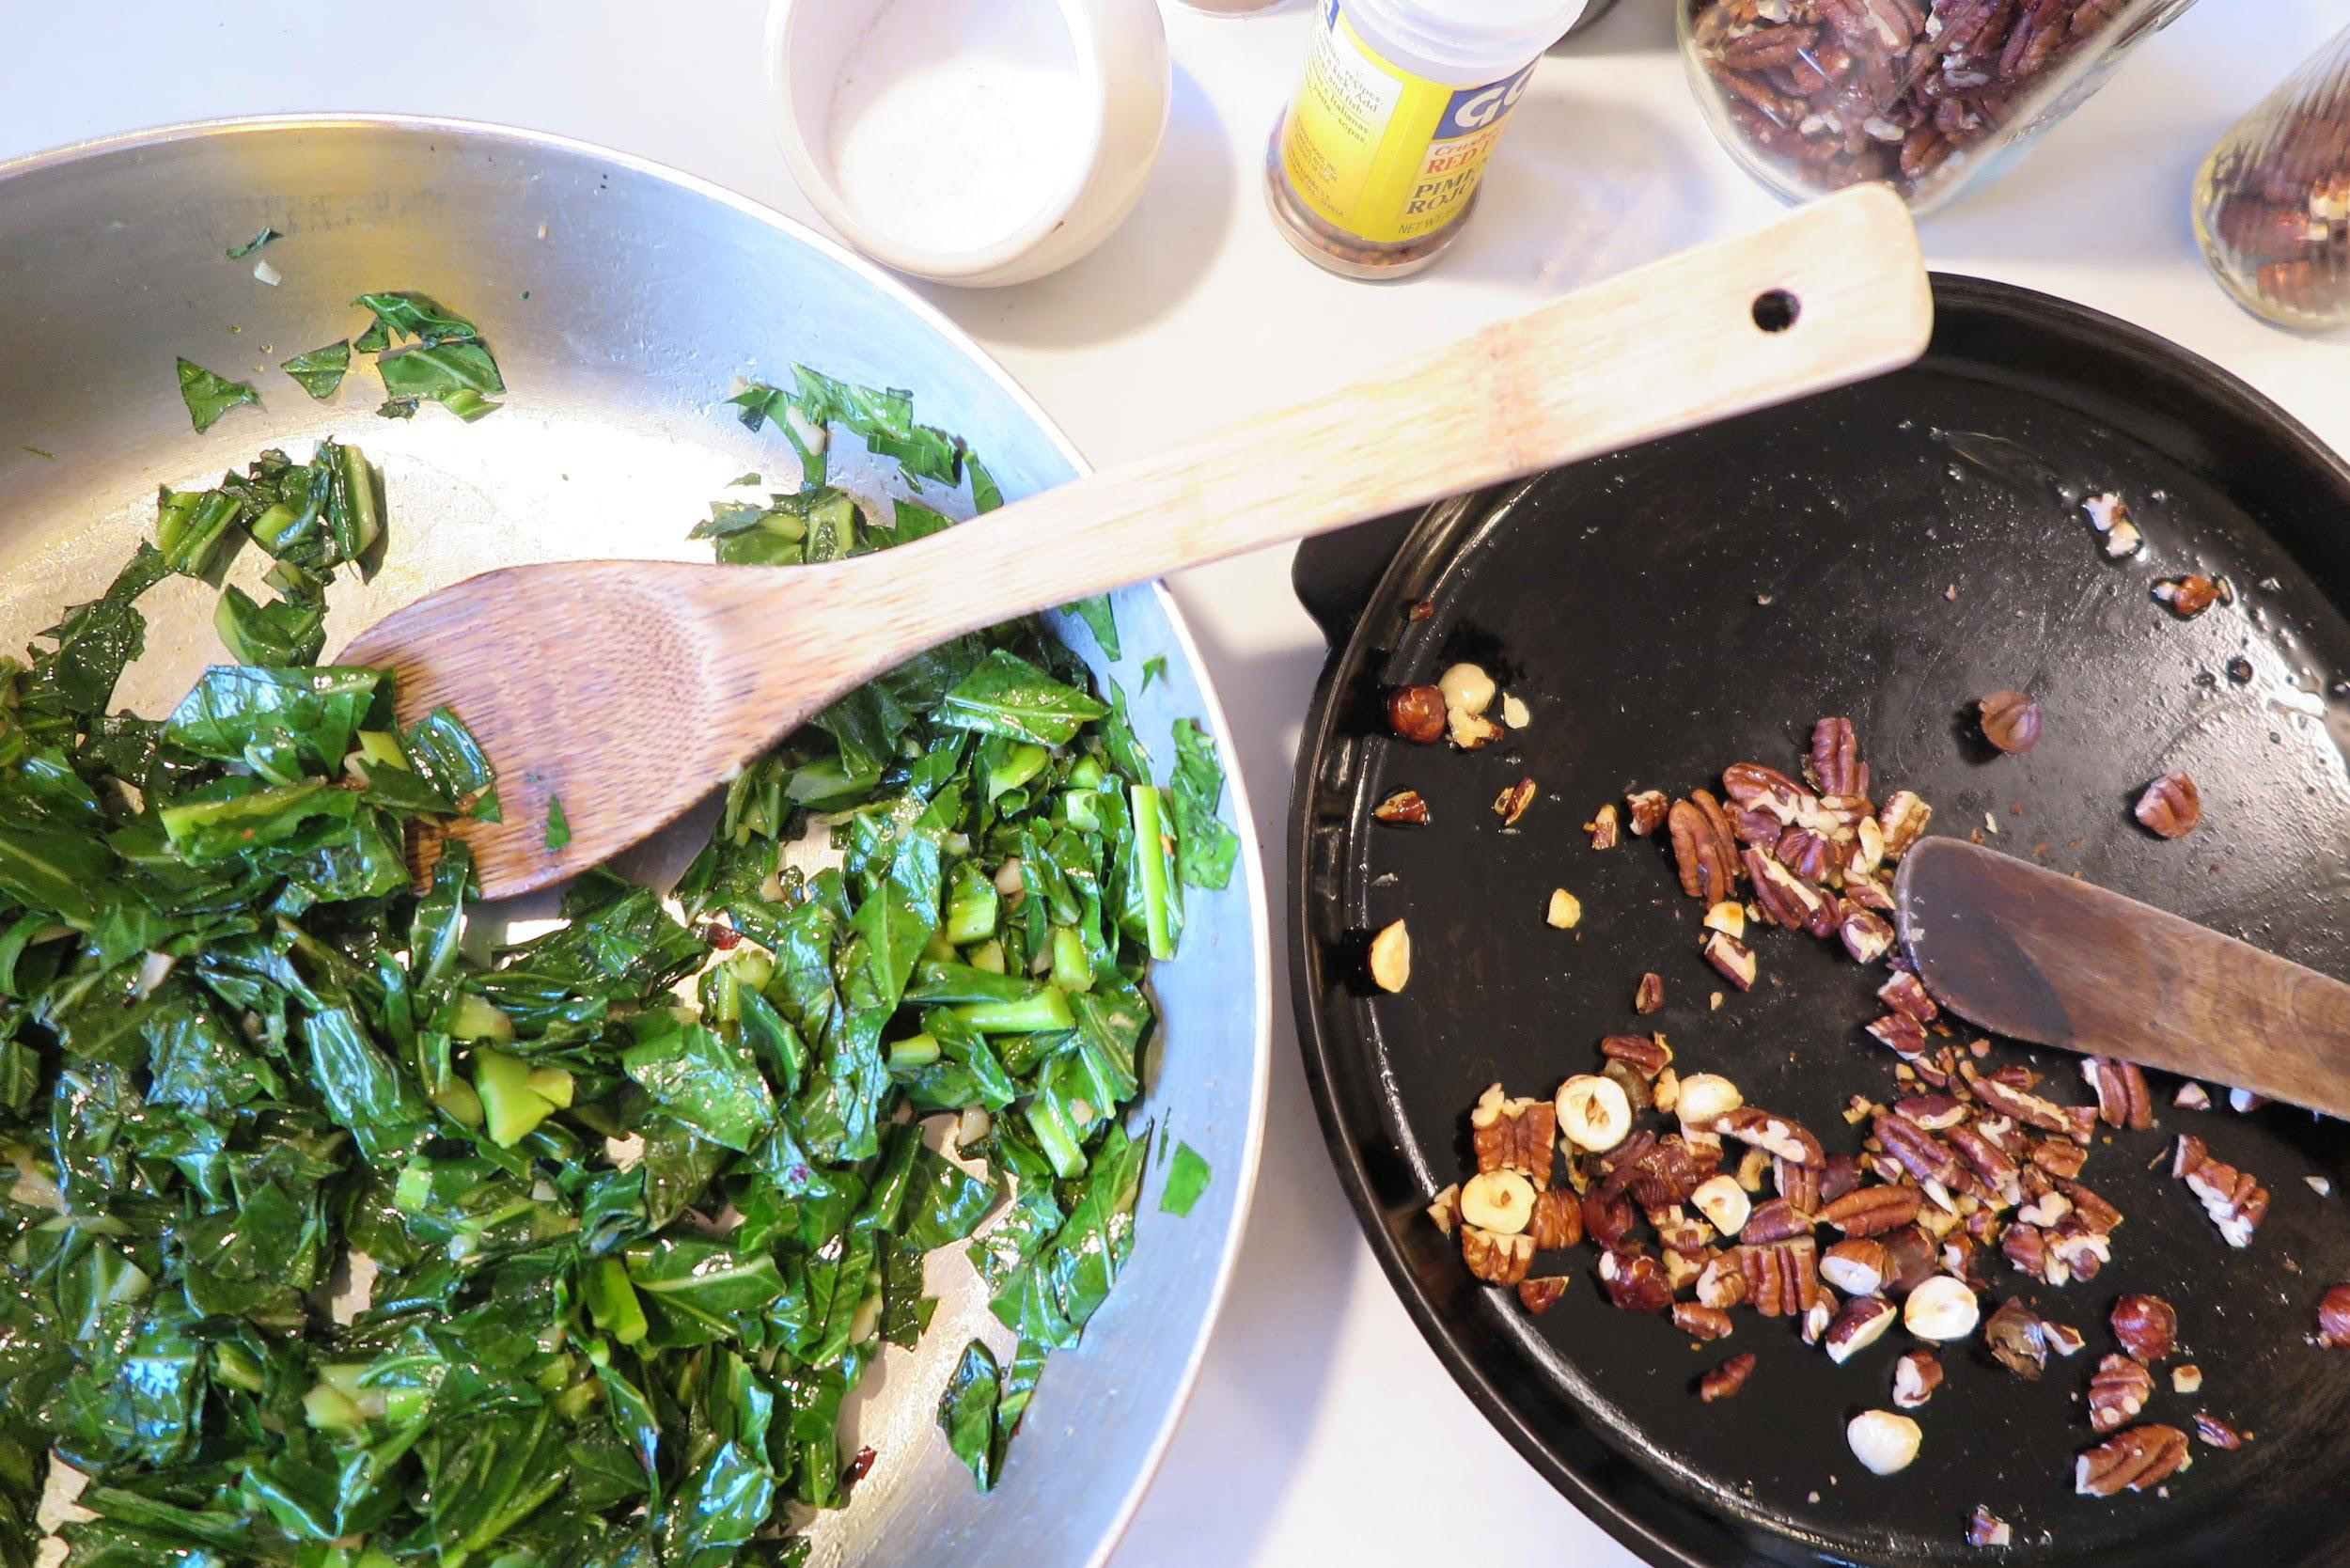 Silver sautee pan with leafy greens and a wooden spoon on the left. On the right, a cast iron pan with toasted chopped nuts.